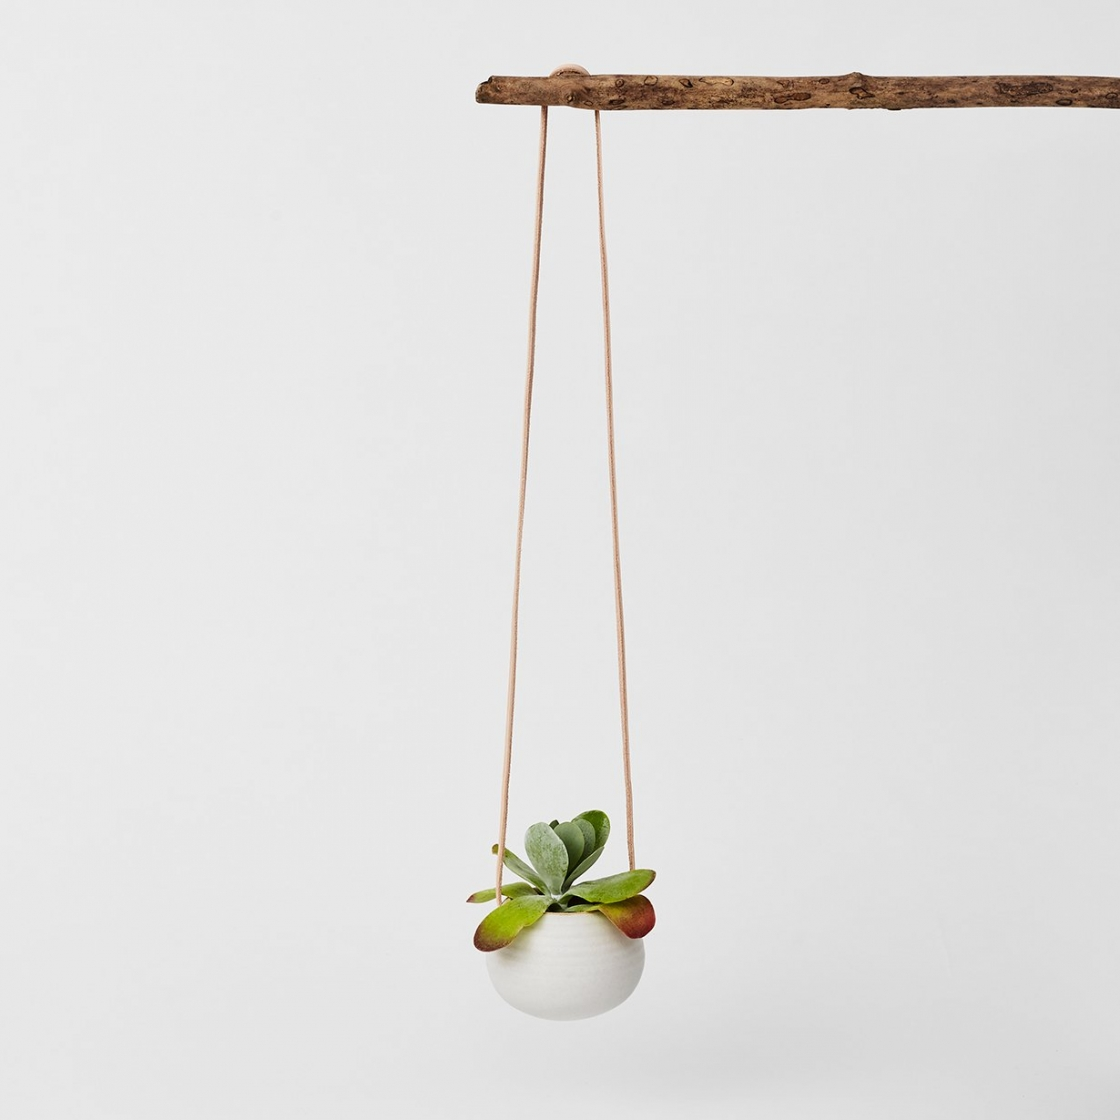 7 Hanging Plant Pots To Give Your Plants A Stylish Edge